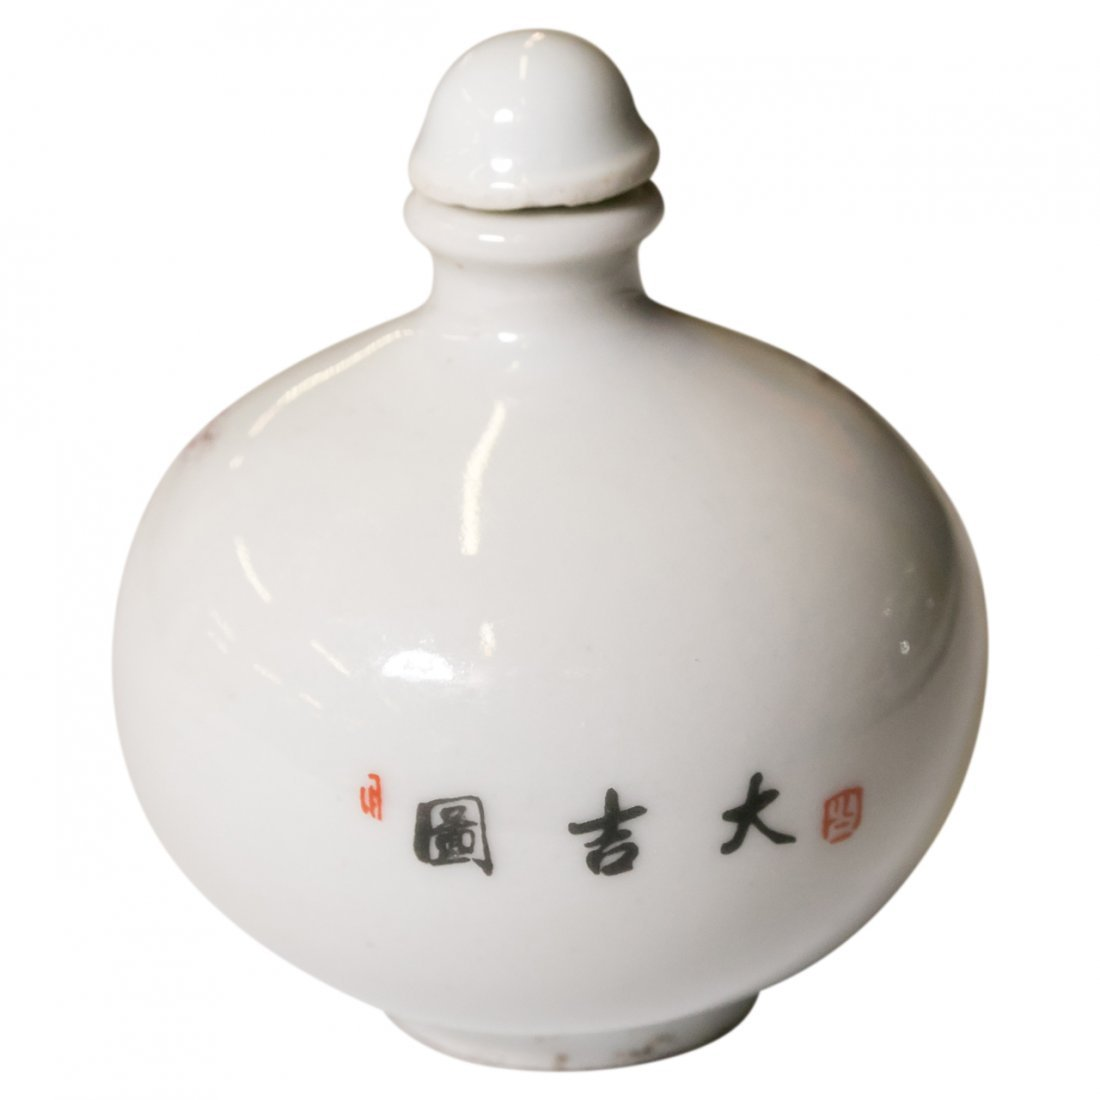 3 Antique Chinese Snuff Bottles - 2